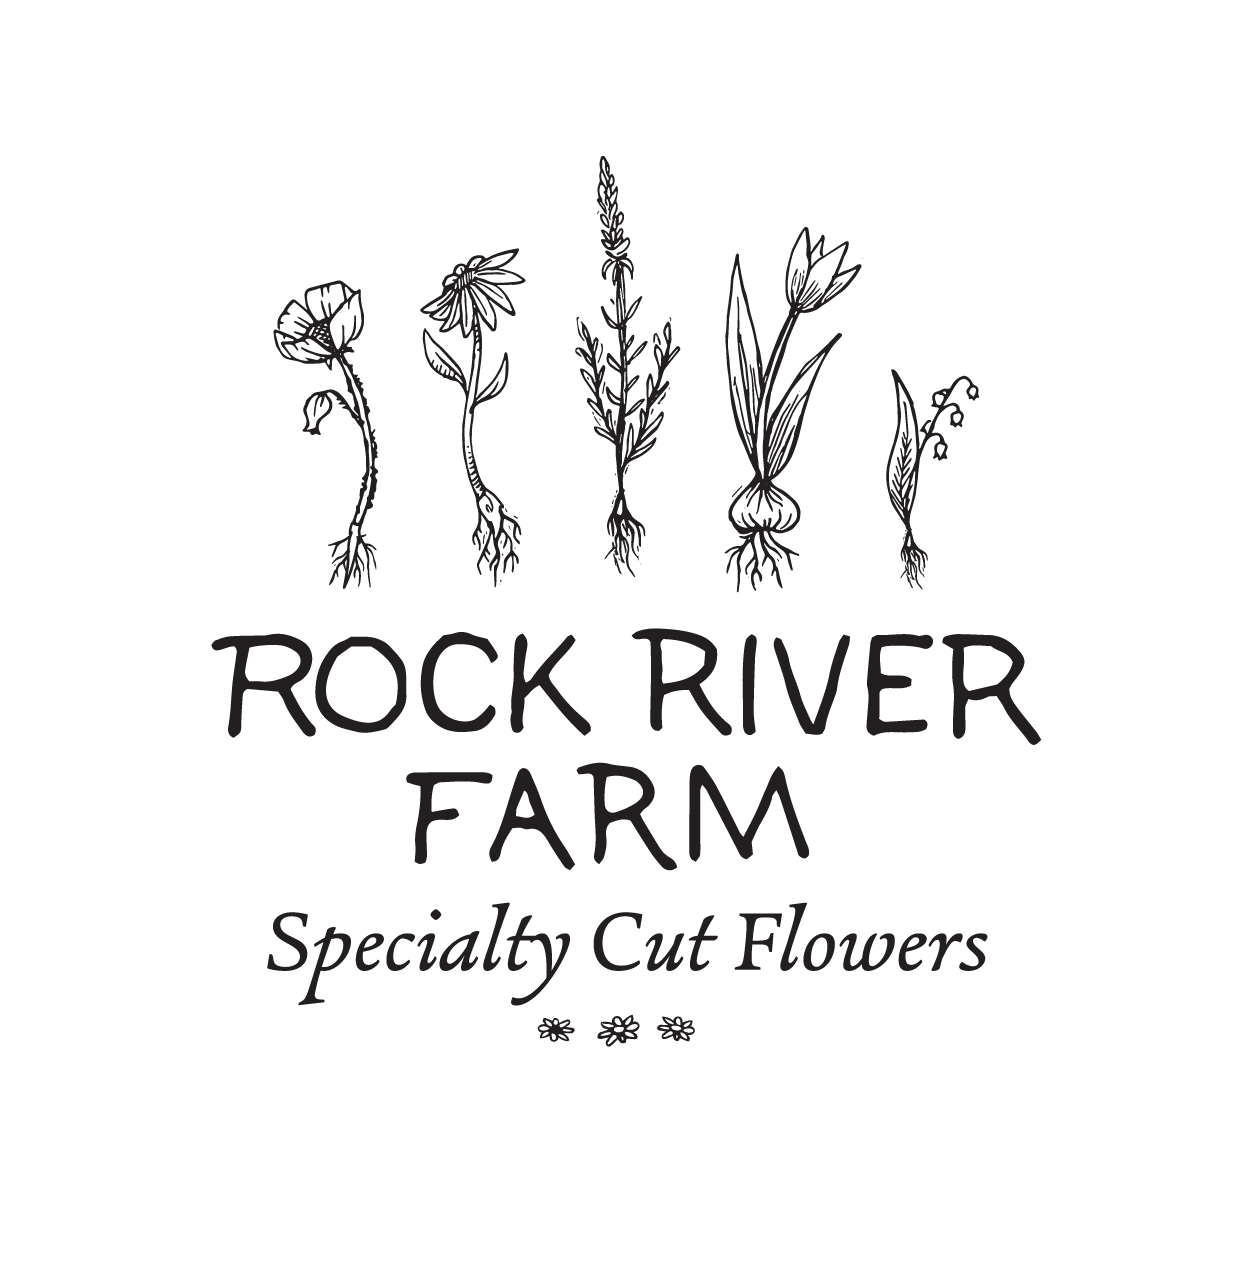 The final Rock River Farm logo: rooted firmly in natural grace and creative spirit.